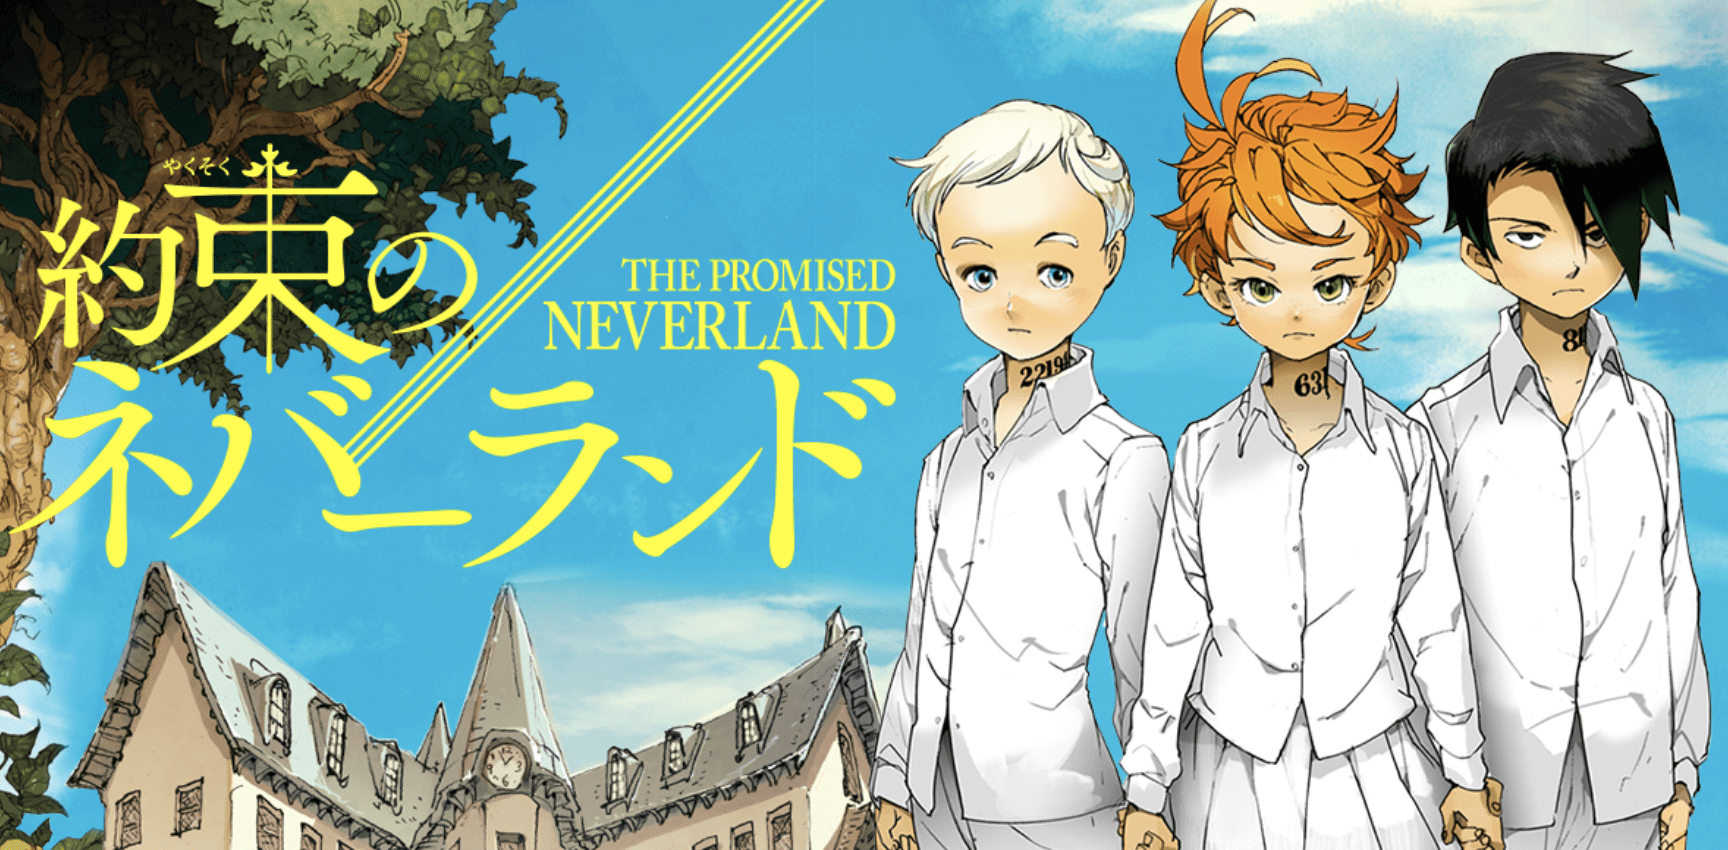 THE PROMISED NEVERLAND Announces New Comedy Spinoff Manga